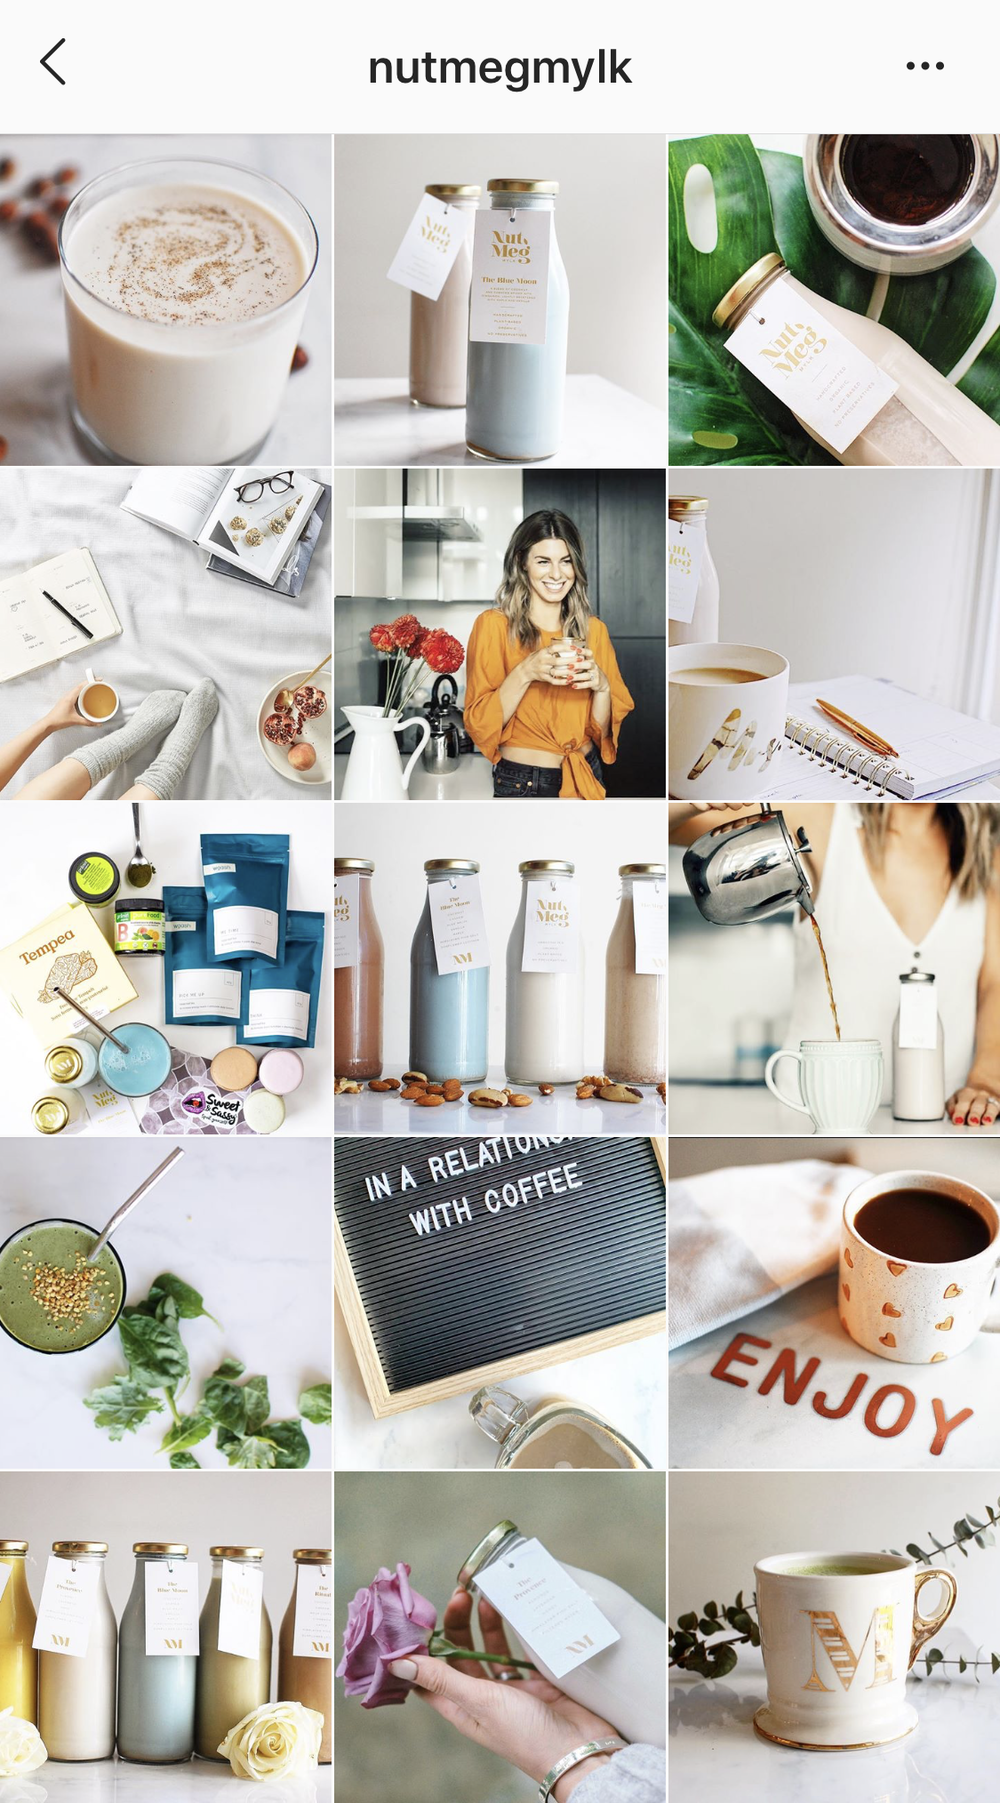 Nutmeg Mylk instagram feed. This is an excellent example of a brand using viual storytelling in their brand images. Clean, natural and modern.